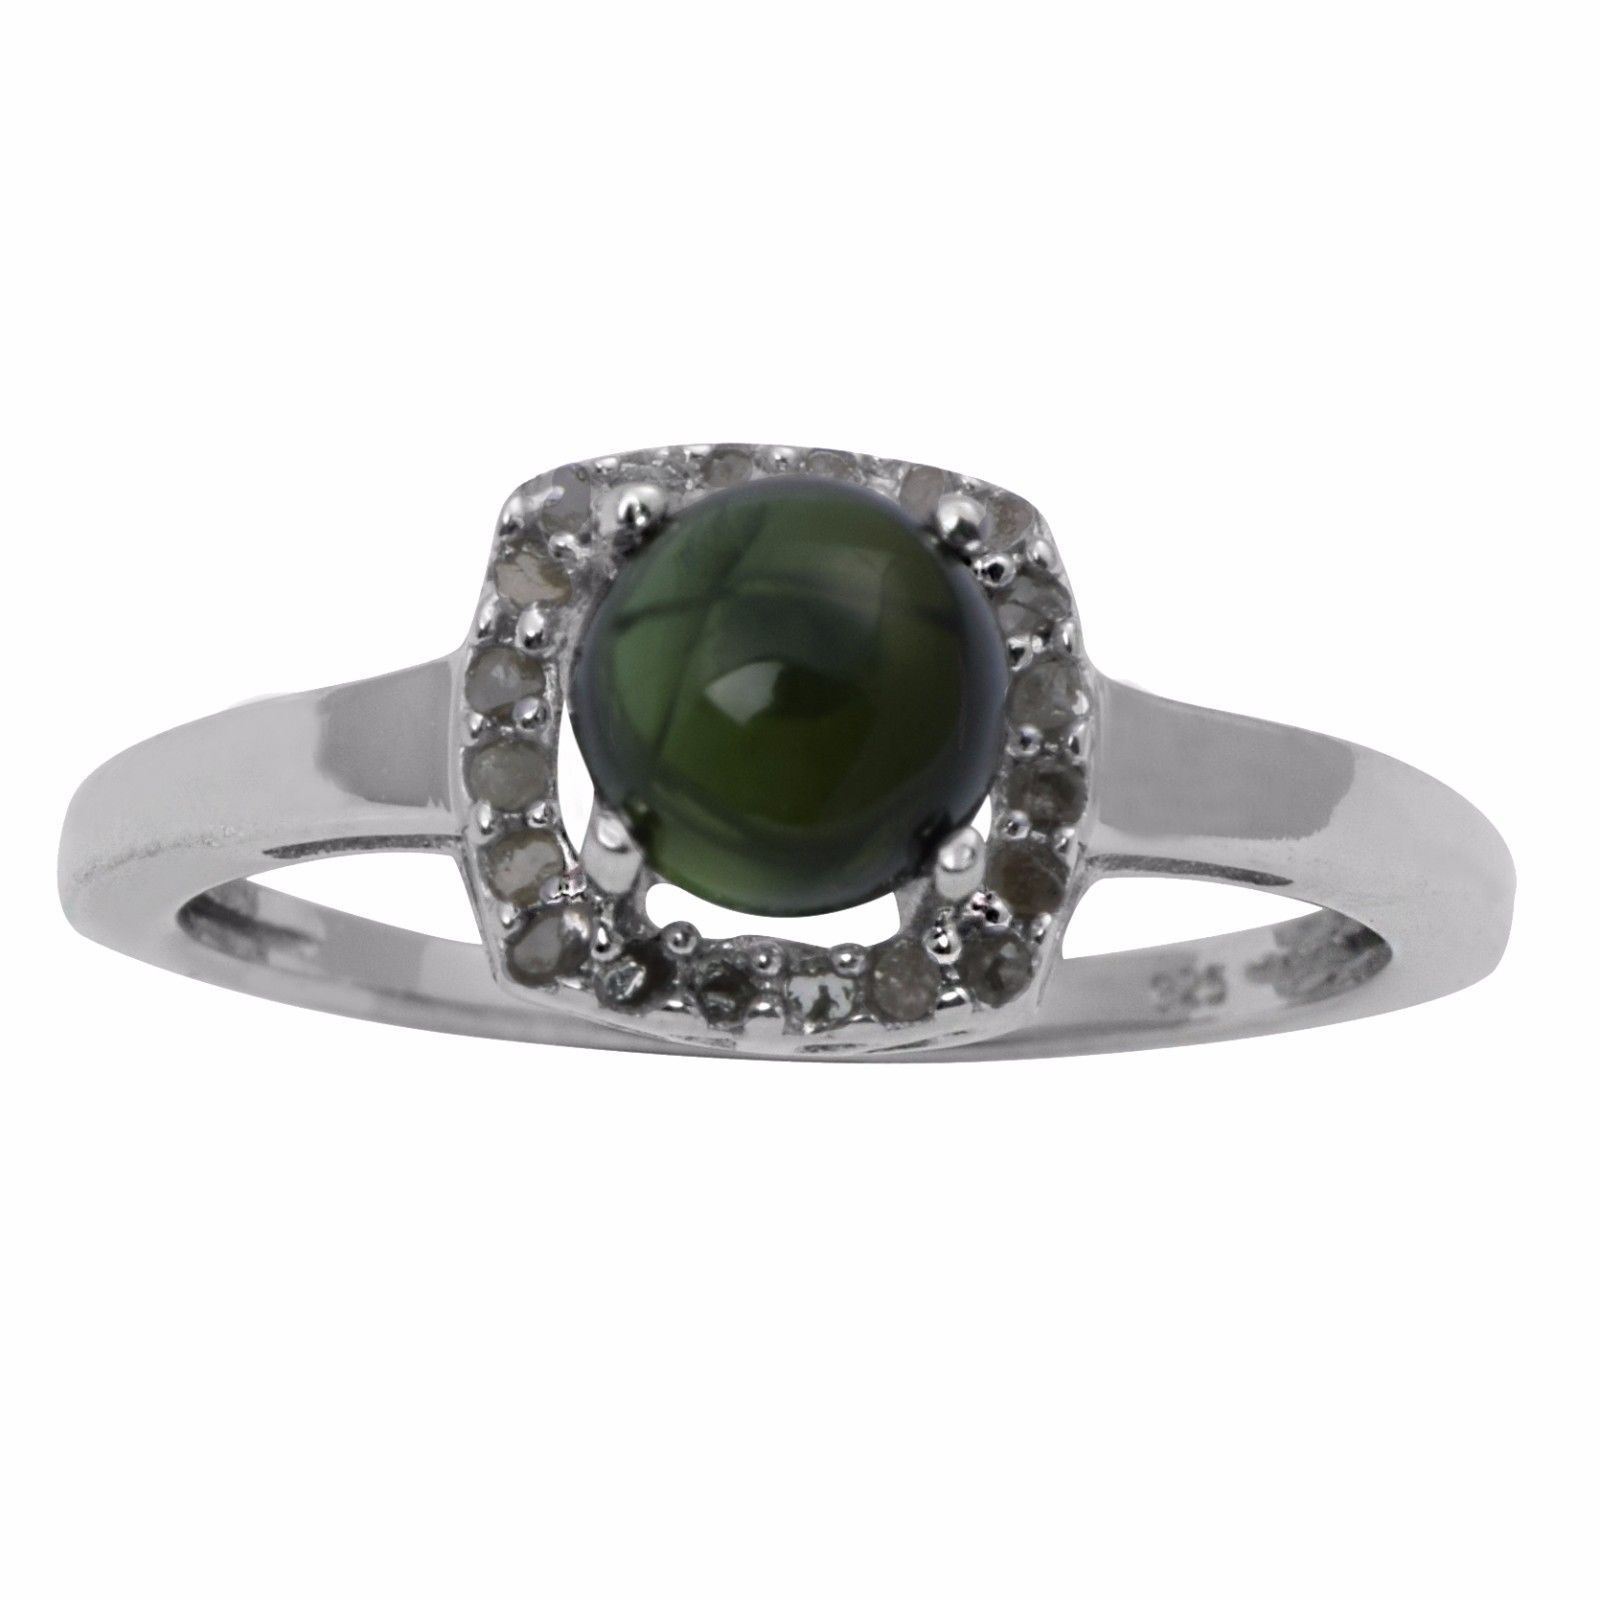 Green Tourmaline And Single Cut Daimond 925 Sterling Silver Ring SZ 7 SHRI0736